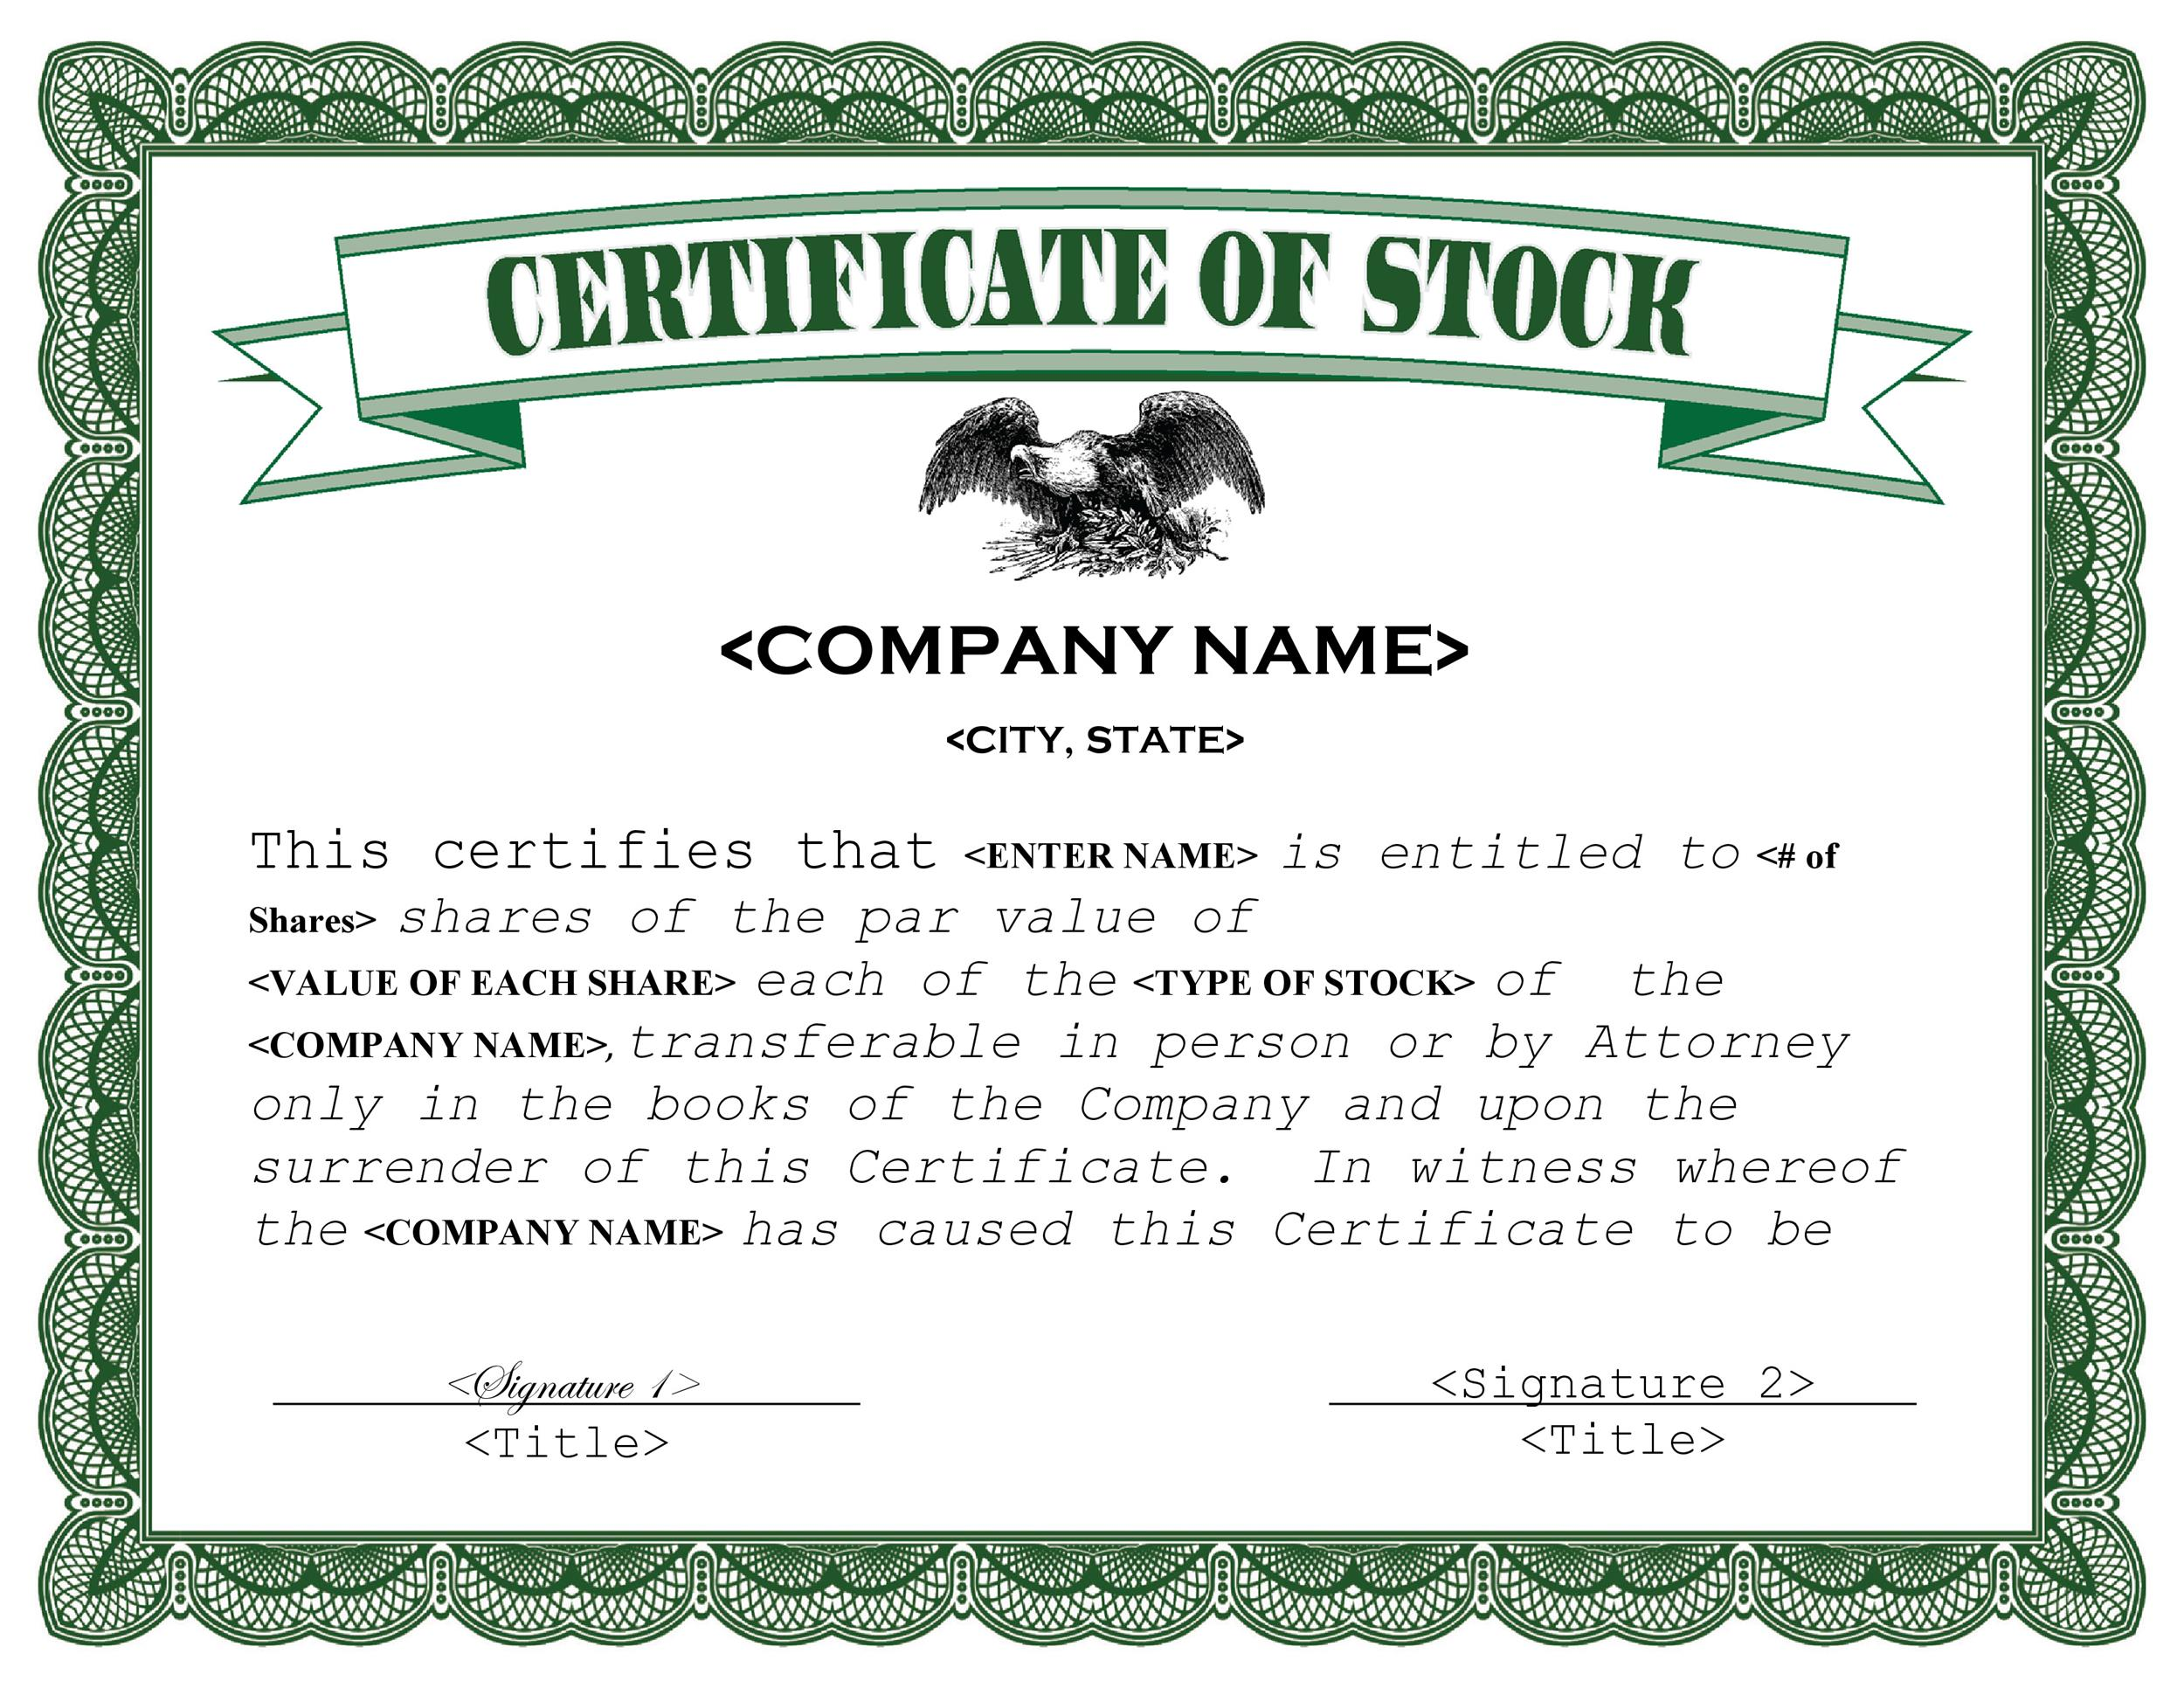 Share and stock certificate template shefftunes stock certificate template share and stock certificate template yelopaper Images